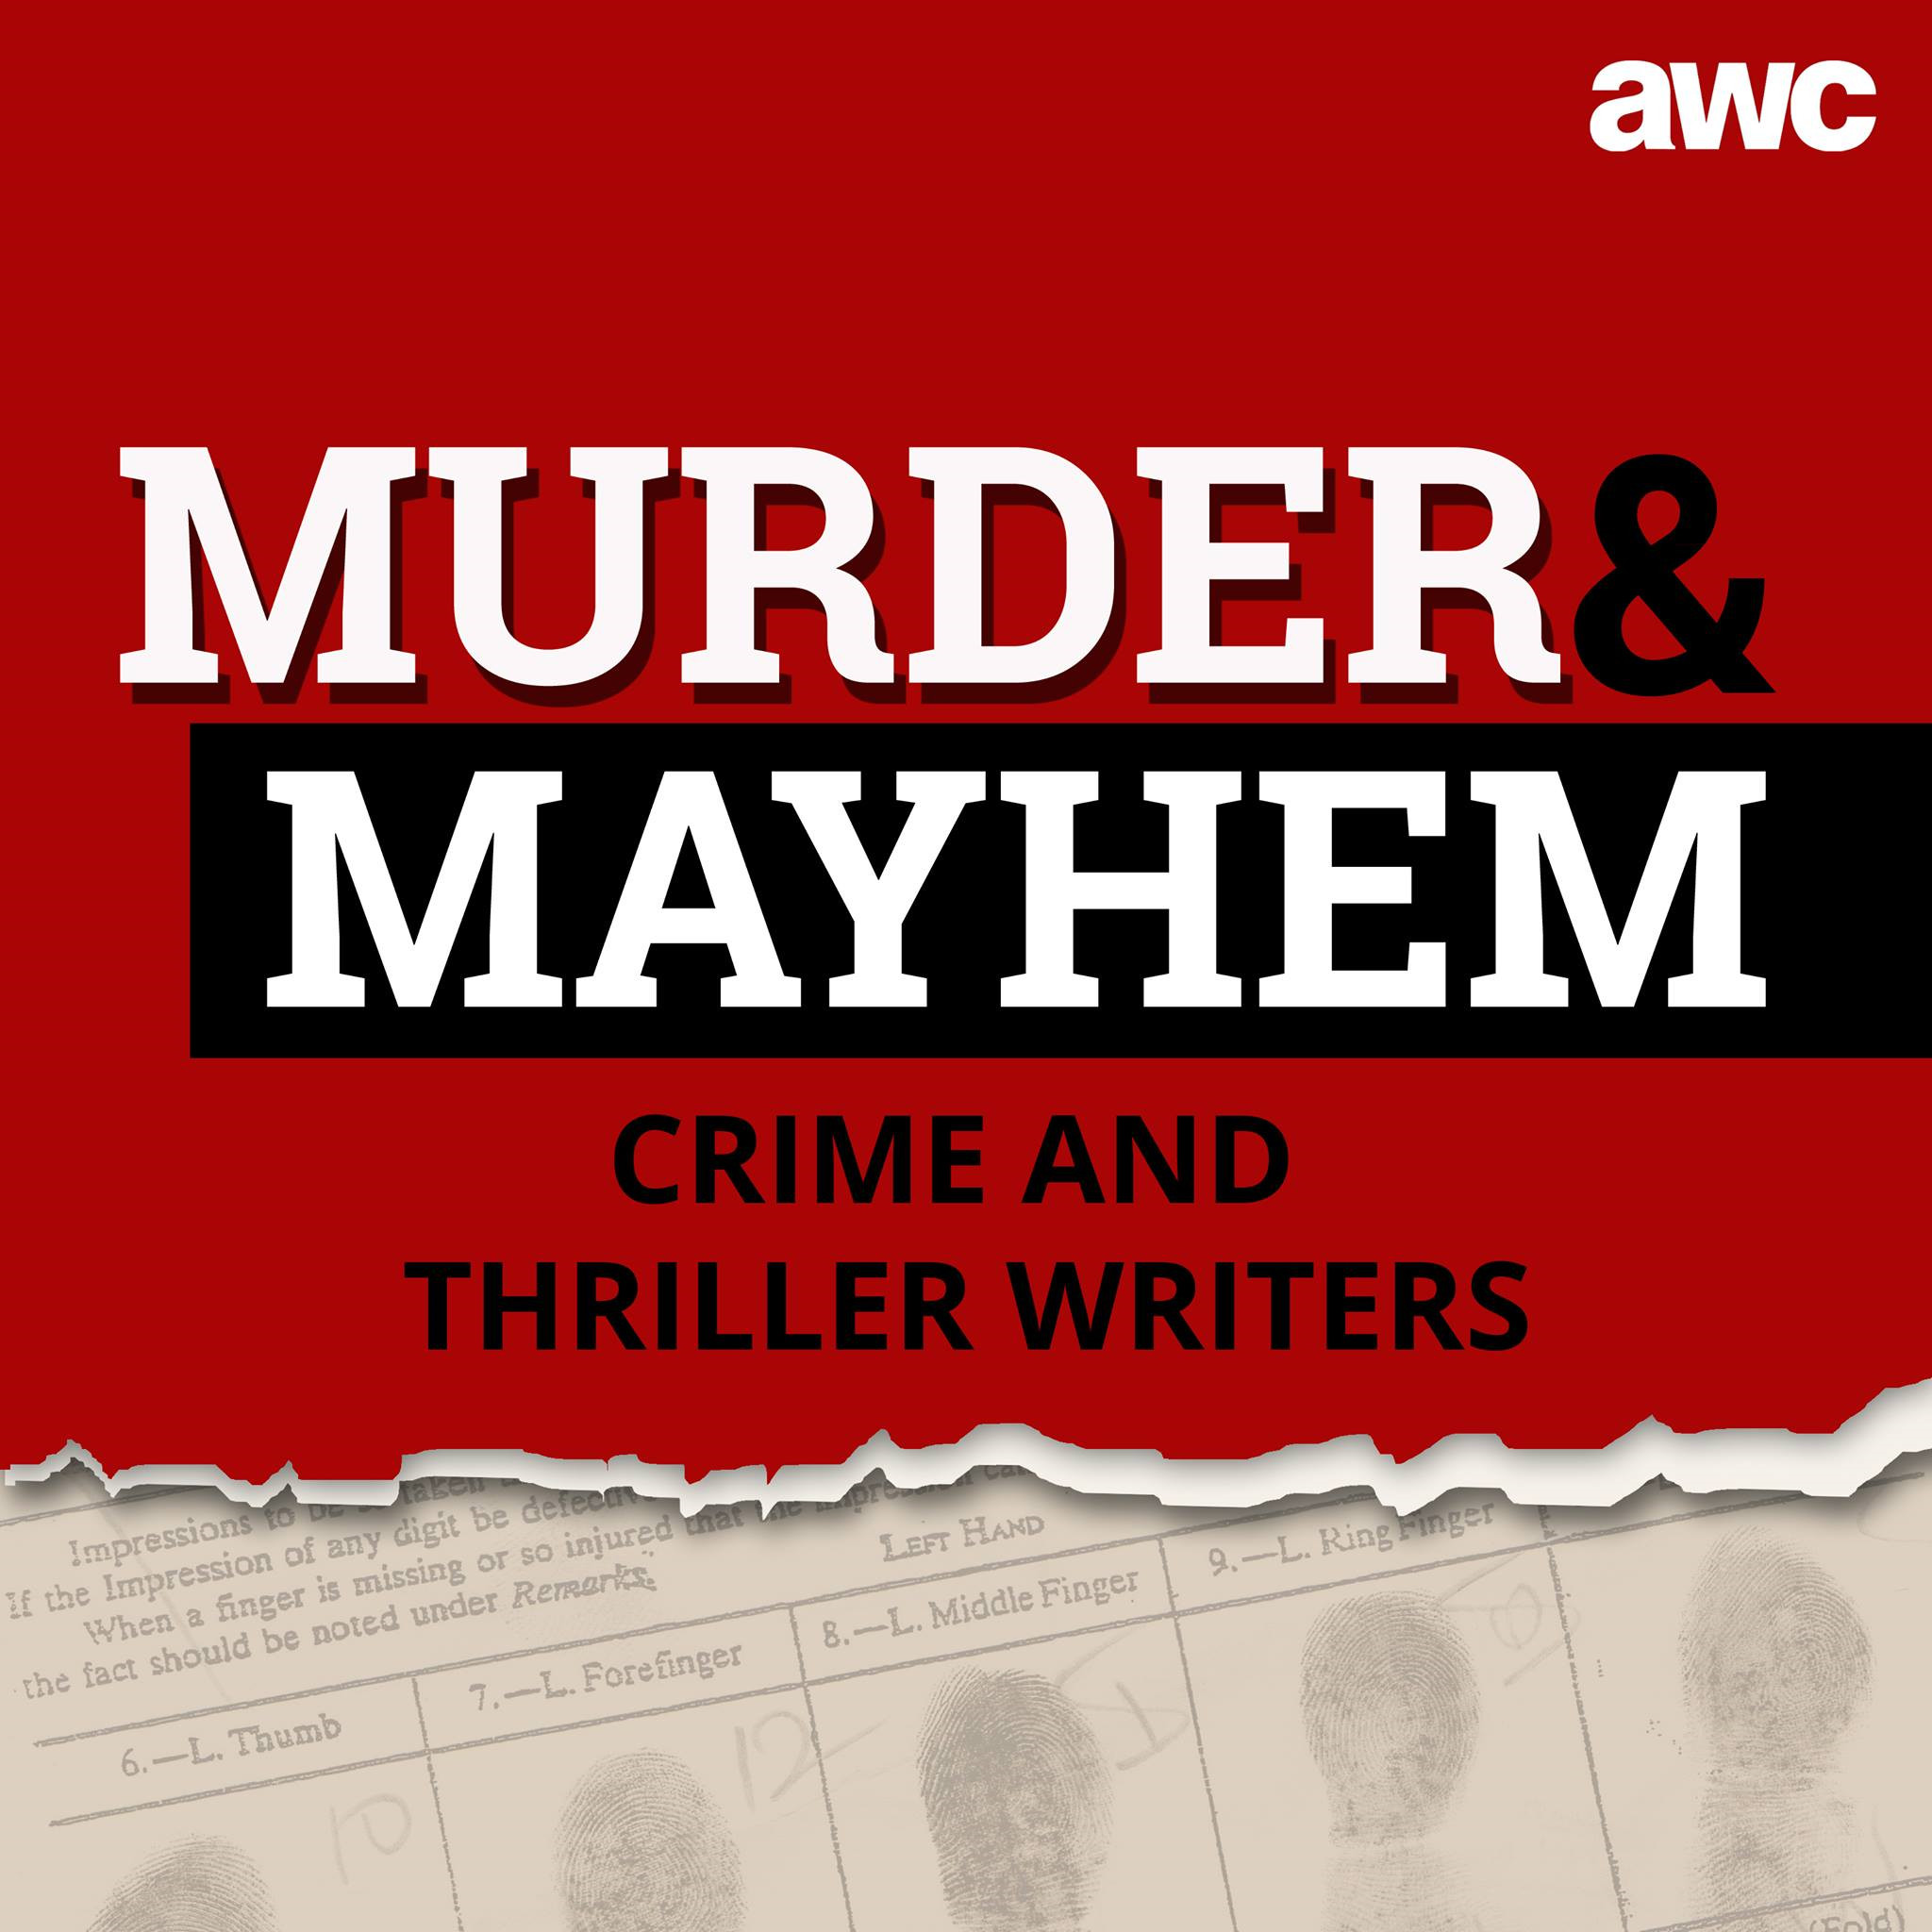 MURDER MAYHEM 21: YA Erskine spent 11 years in the police service. She is now a crime fiction author.